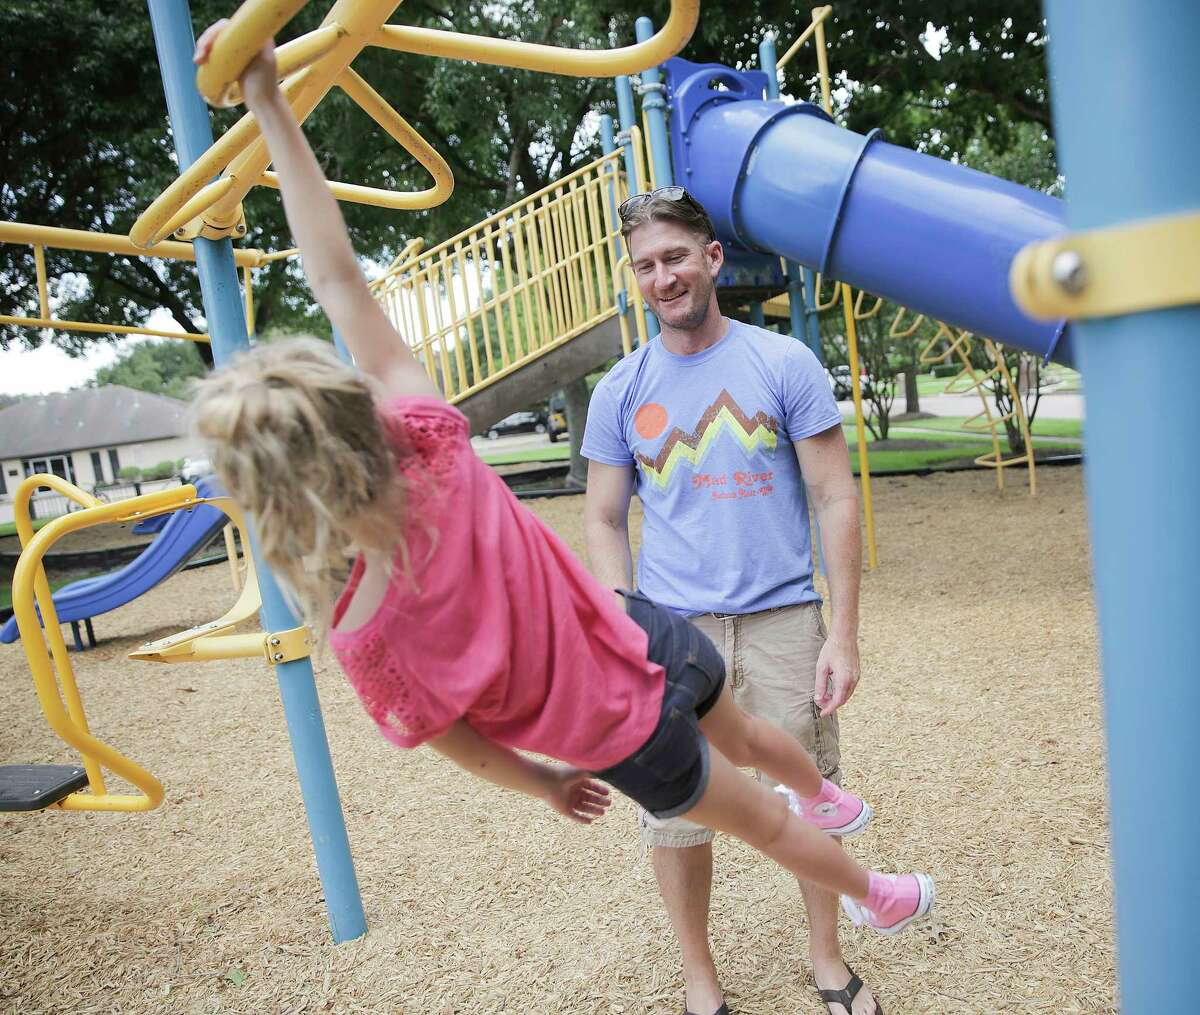 Ben Andrews watches his daughter, Addison, 8, as she plays on a swing set on Thursday, July 20, 2017, in Pearland. Andrews, 38, was diagnosed with the same type of brain cancer Sen. John McCain has almost 2 years ago.